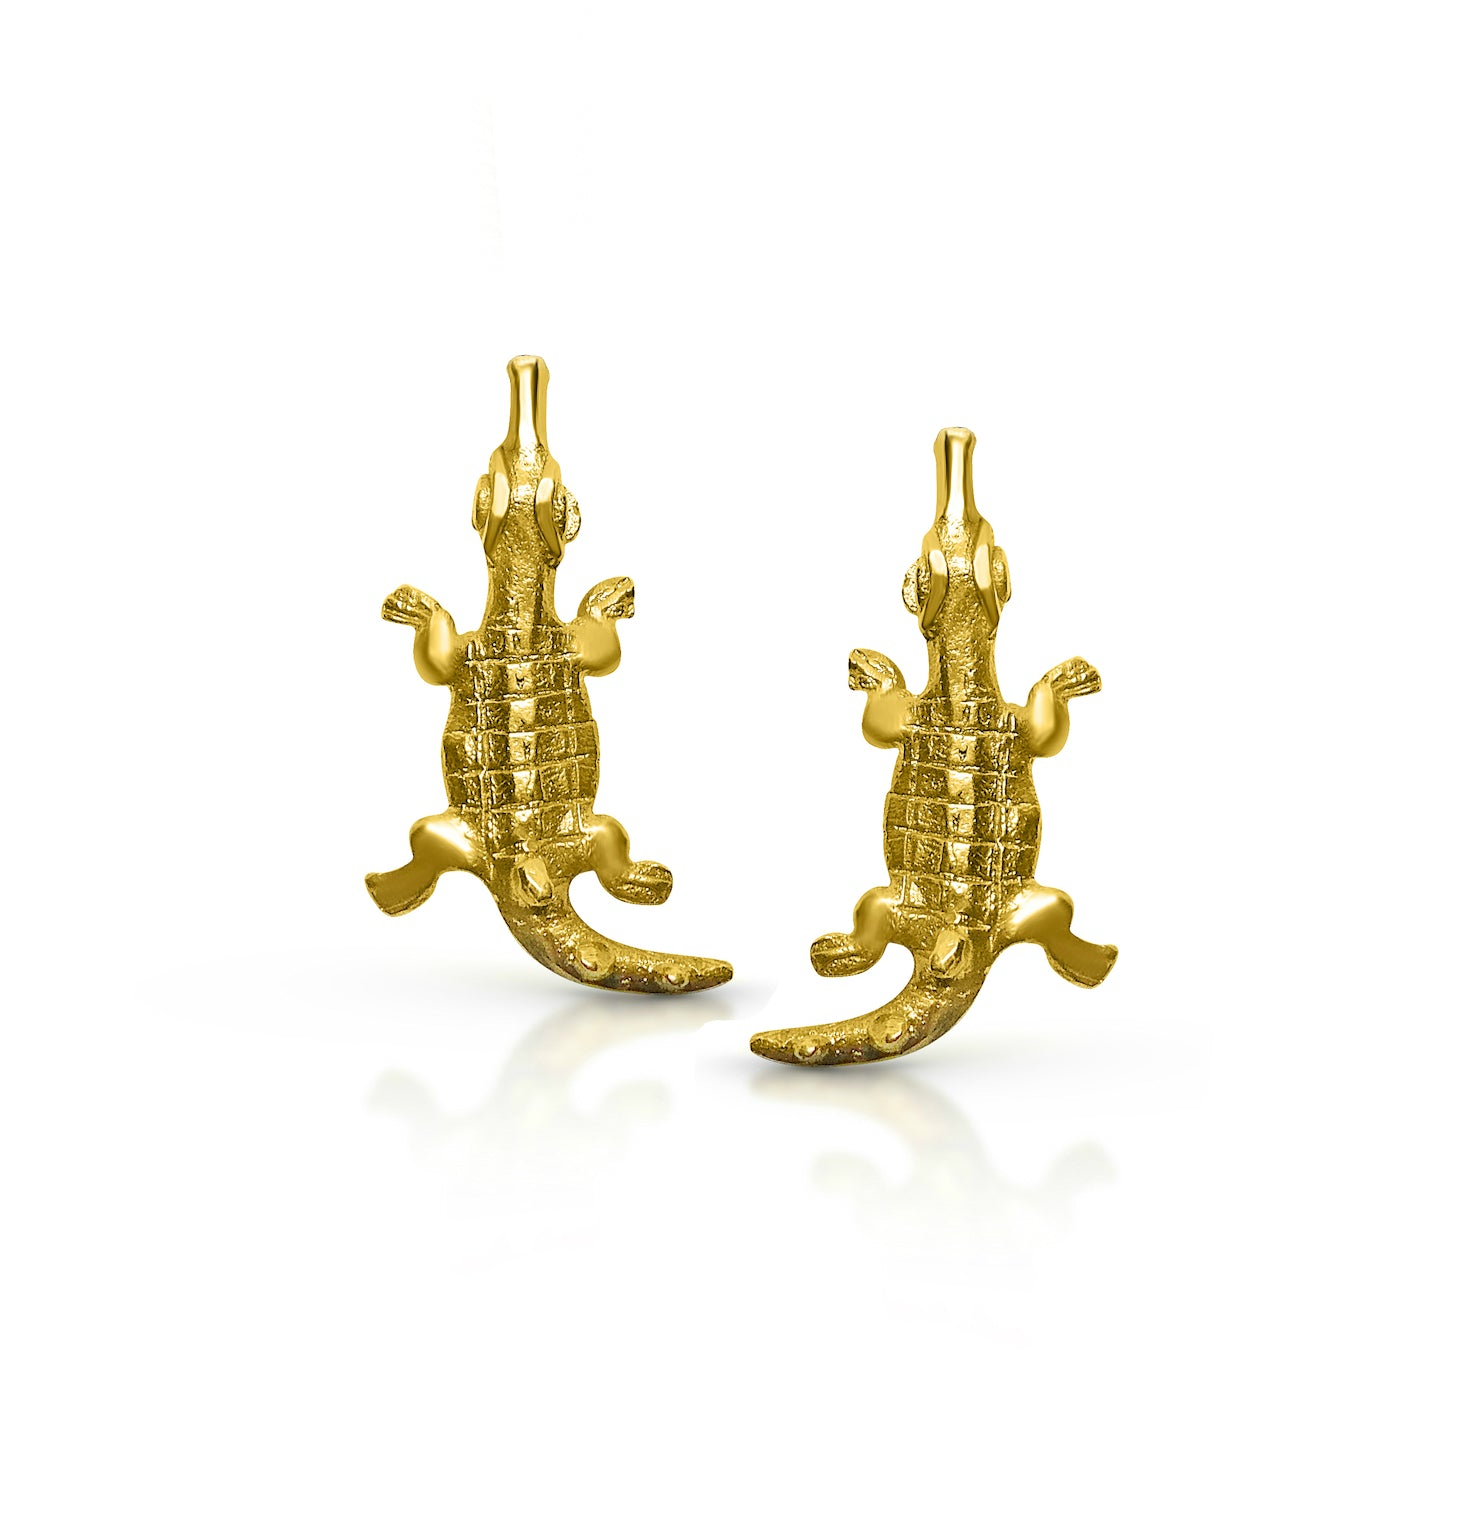 Croc stud earrings